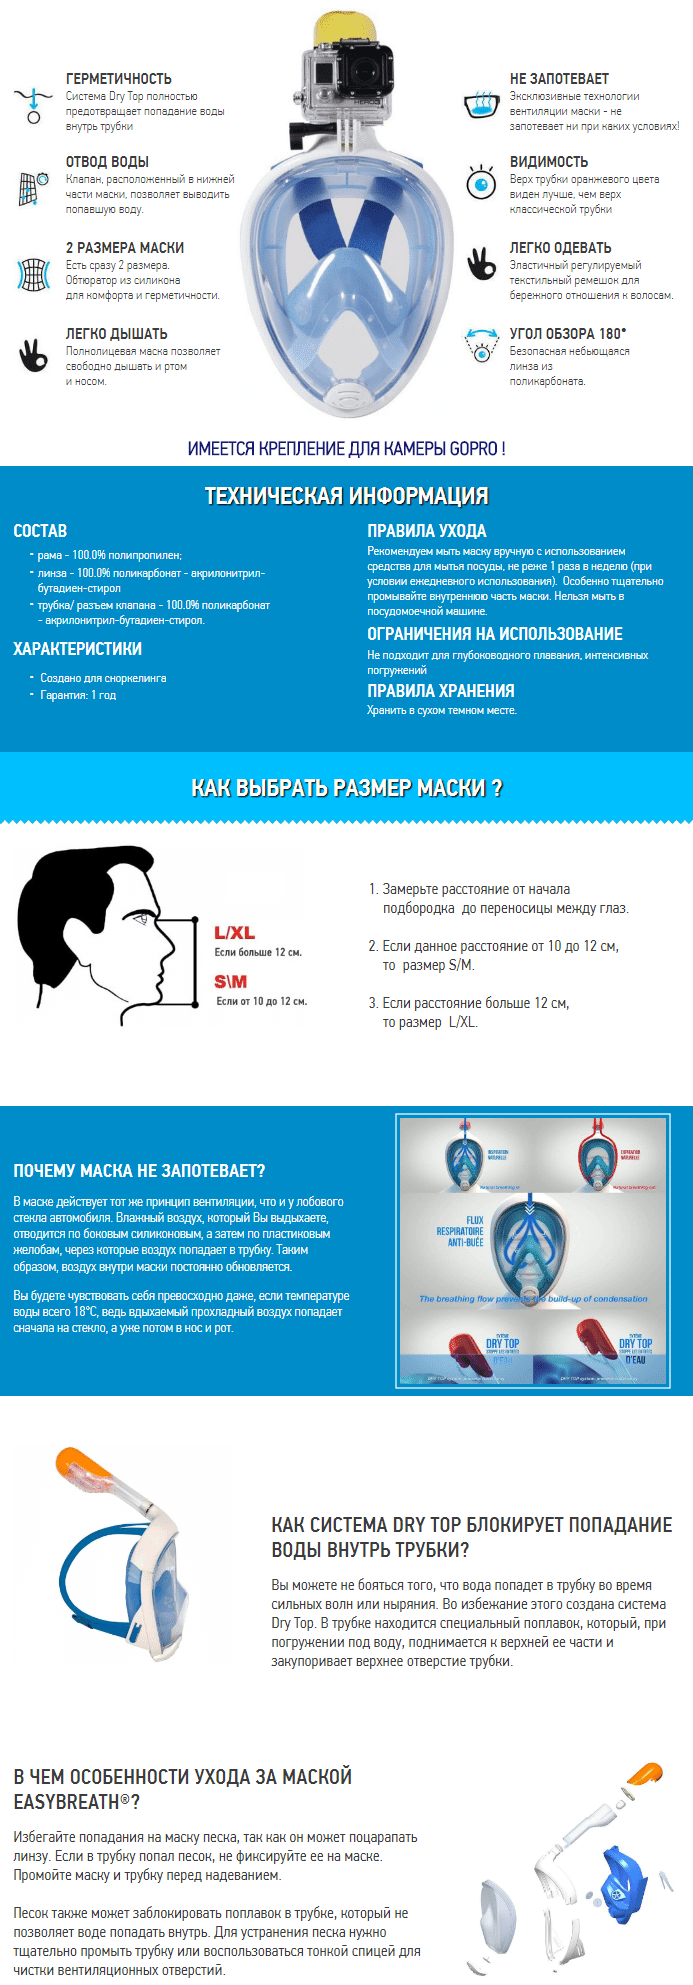 Маска для снорклинга Easybreath купить